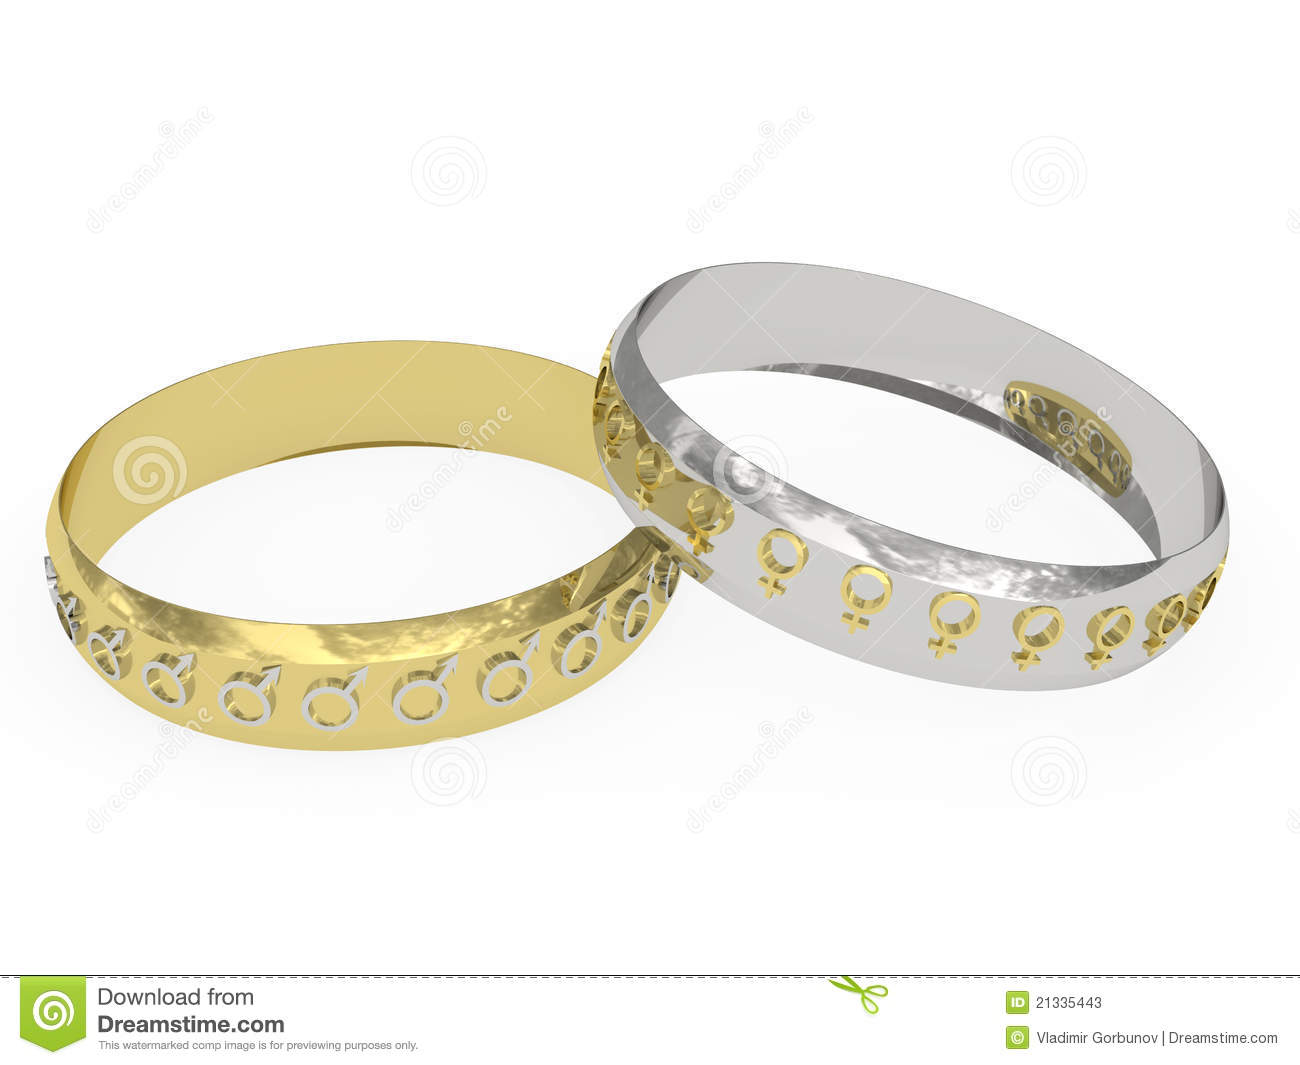 wedding rings with male and female symbols download - Female Wedding Rings